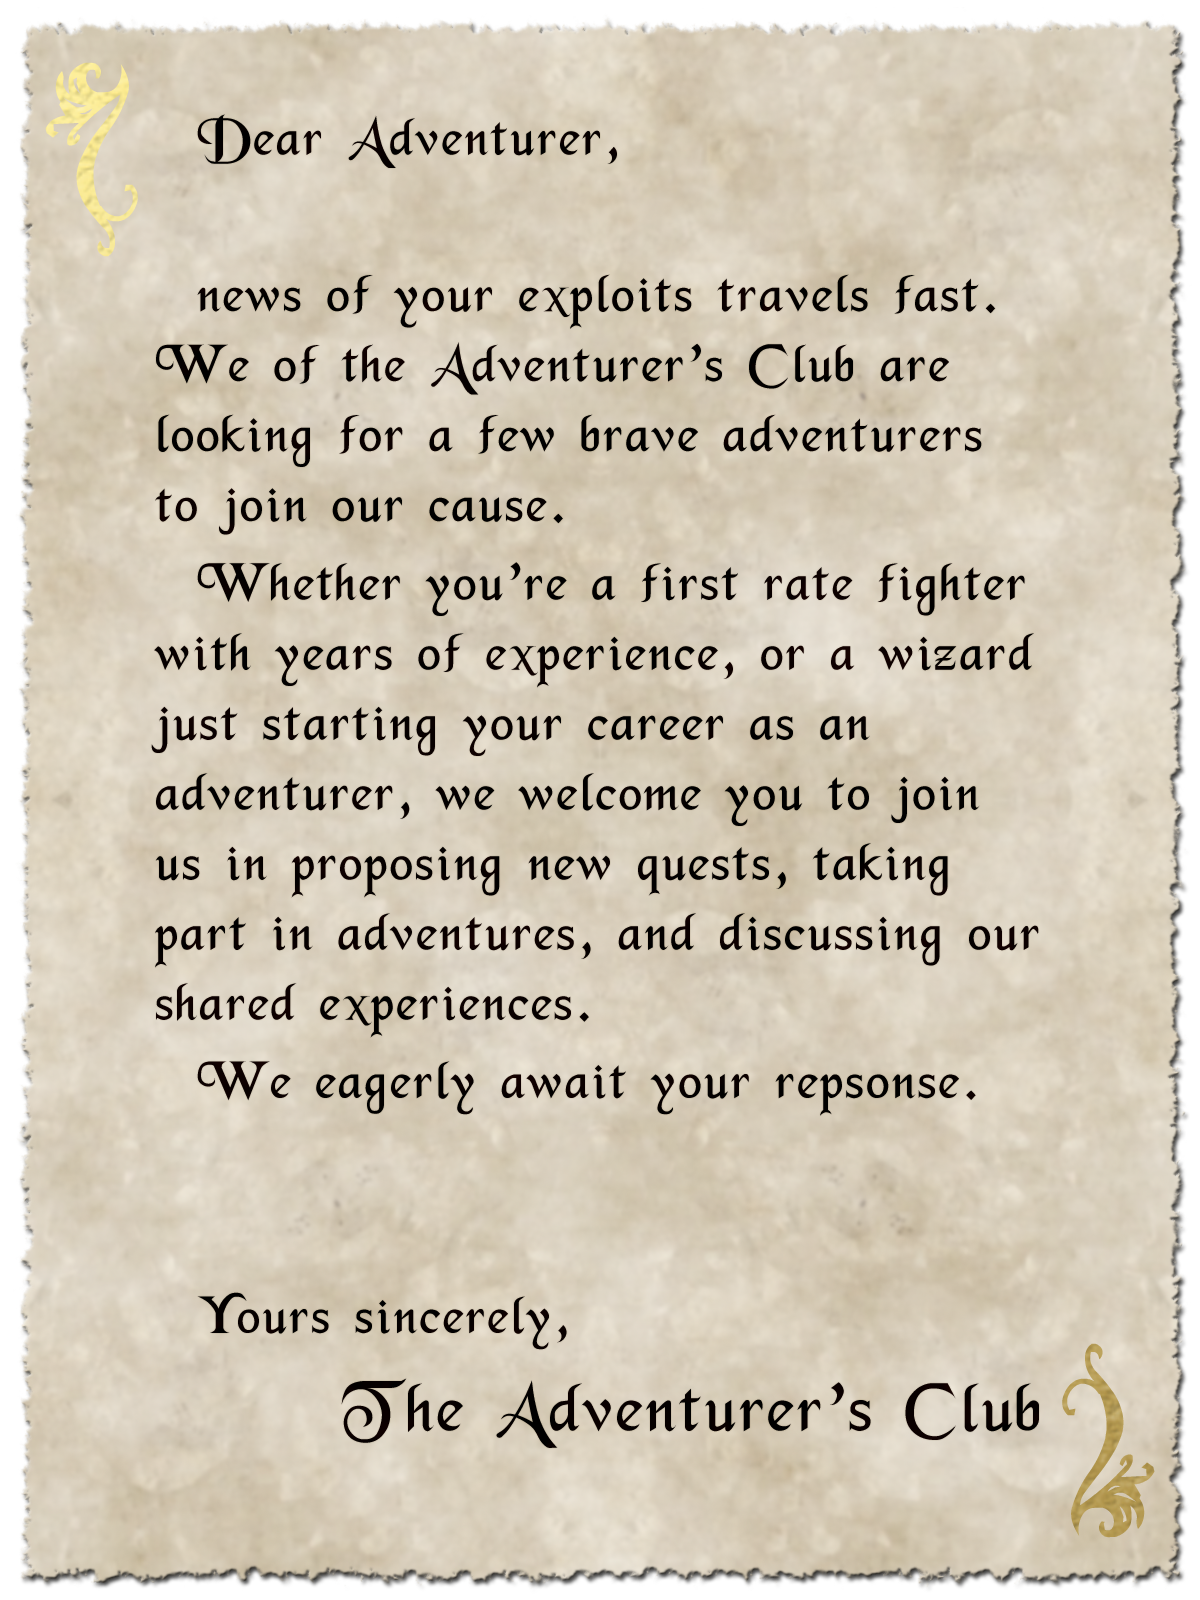 Dear Adventurer,  news of your exploits travels fast. We of the Adventurer's Club are looking for a few brave adventurers to join our cause.  Whether you're a first rate fighter with years of experience, or a wizard just starting your career as an adventurer, we welcome you to join us in proposing new quests, taking part in adventures, and discussing our shared experiences.  We eagerly await your response.  Yours sincerely, The Adventurer's Club